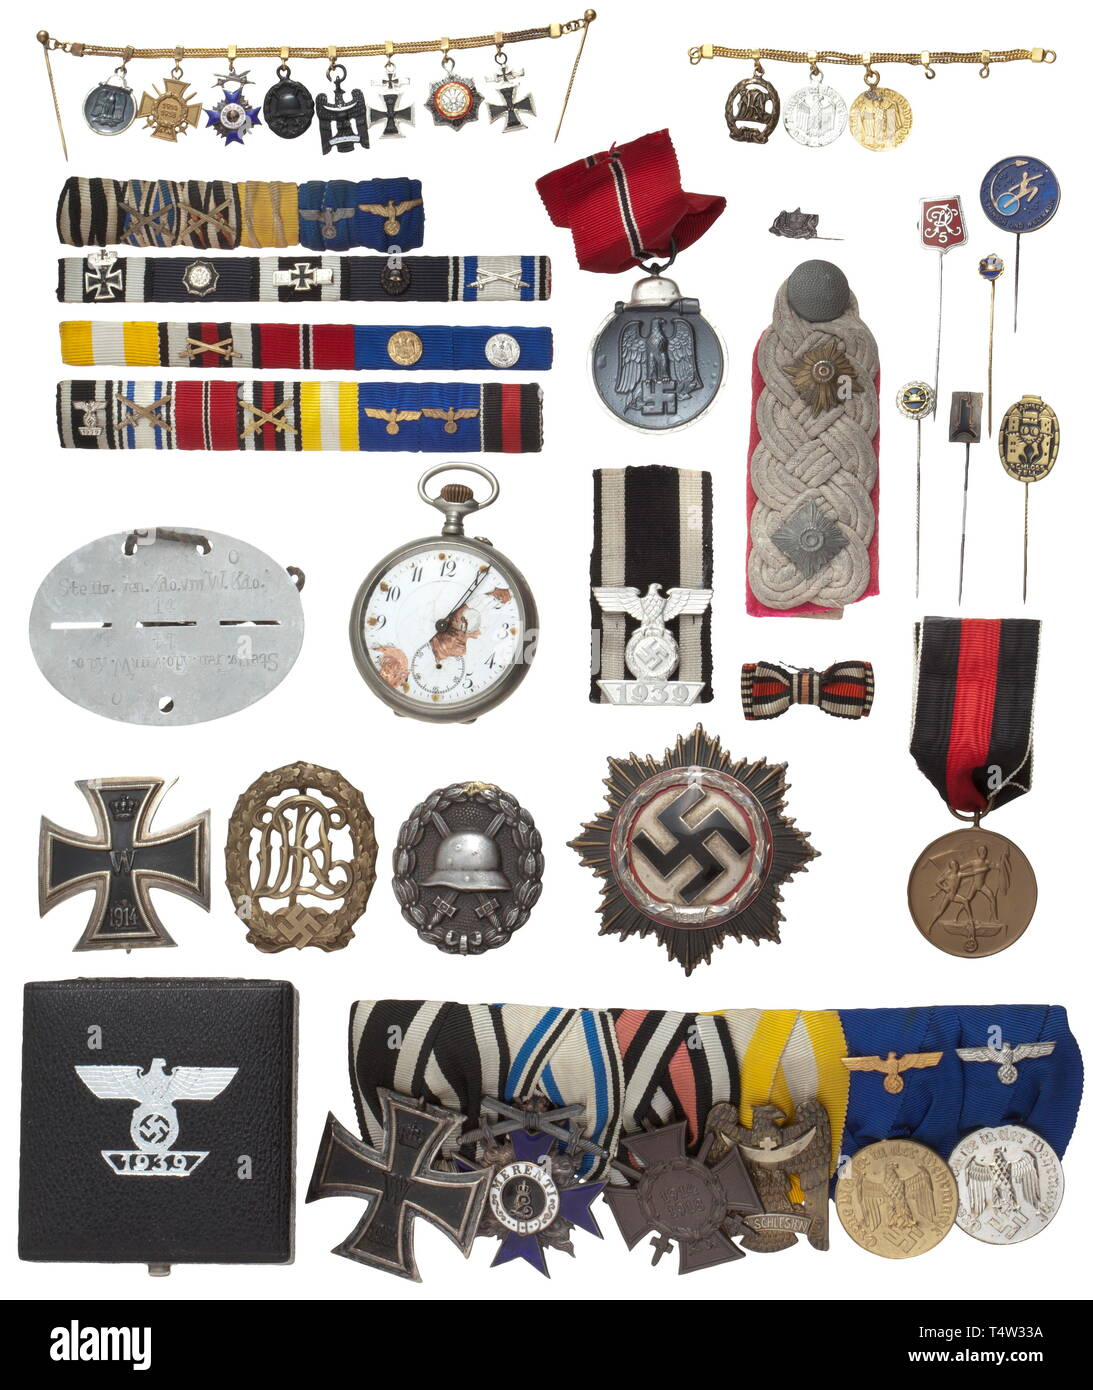 Oberst i  G  Curt Pollex - a German Cross in Silver as well as the